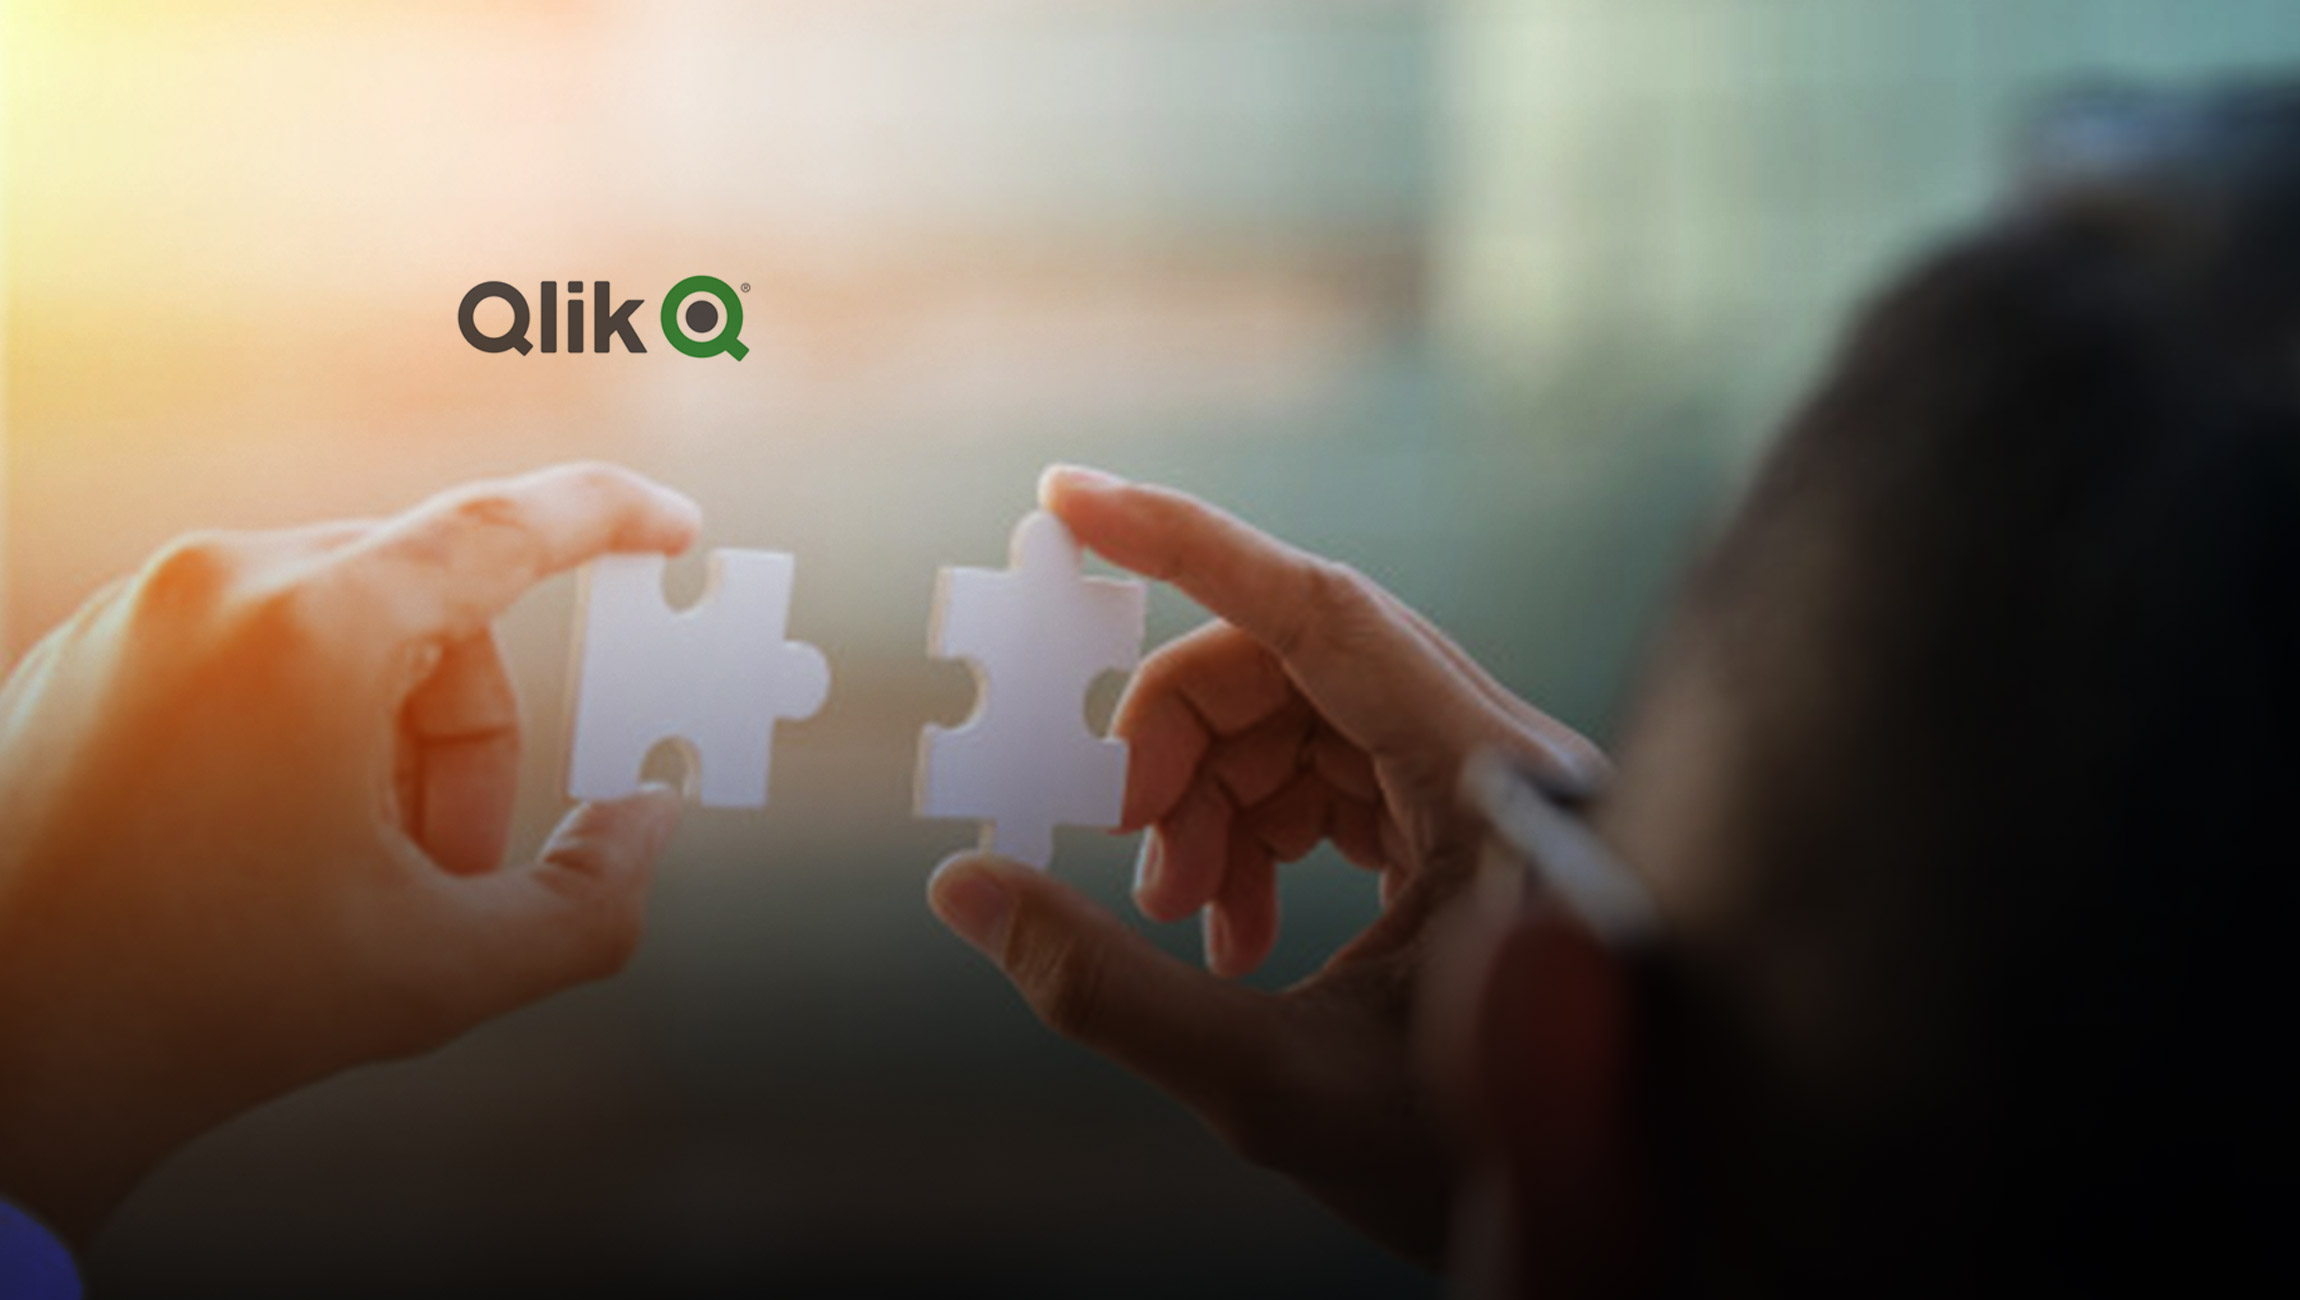 Qlik Acquires Blendr.io To Drive Real-time Data Into SaaS Applications and Automate Enterprise Processes To Create New Insights and Trigger Actions